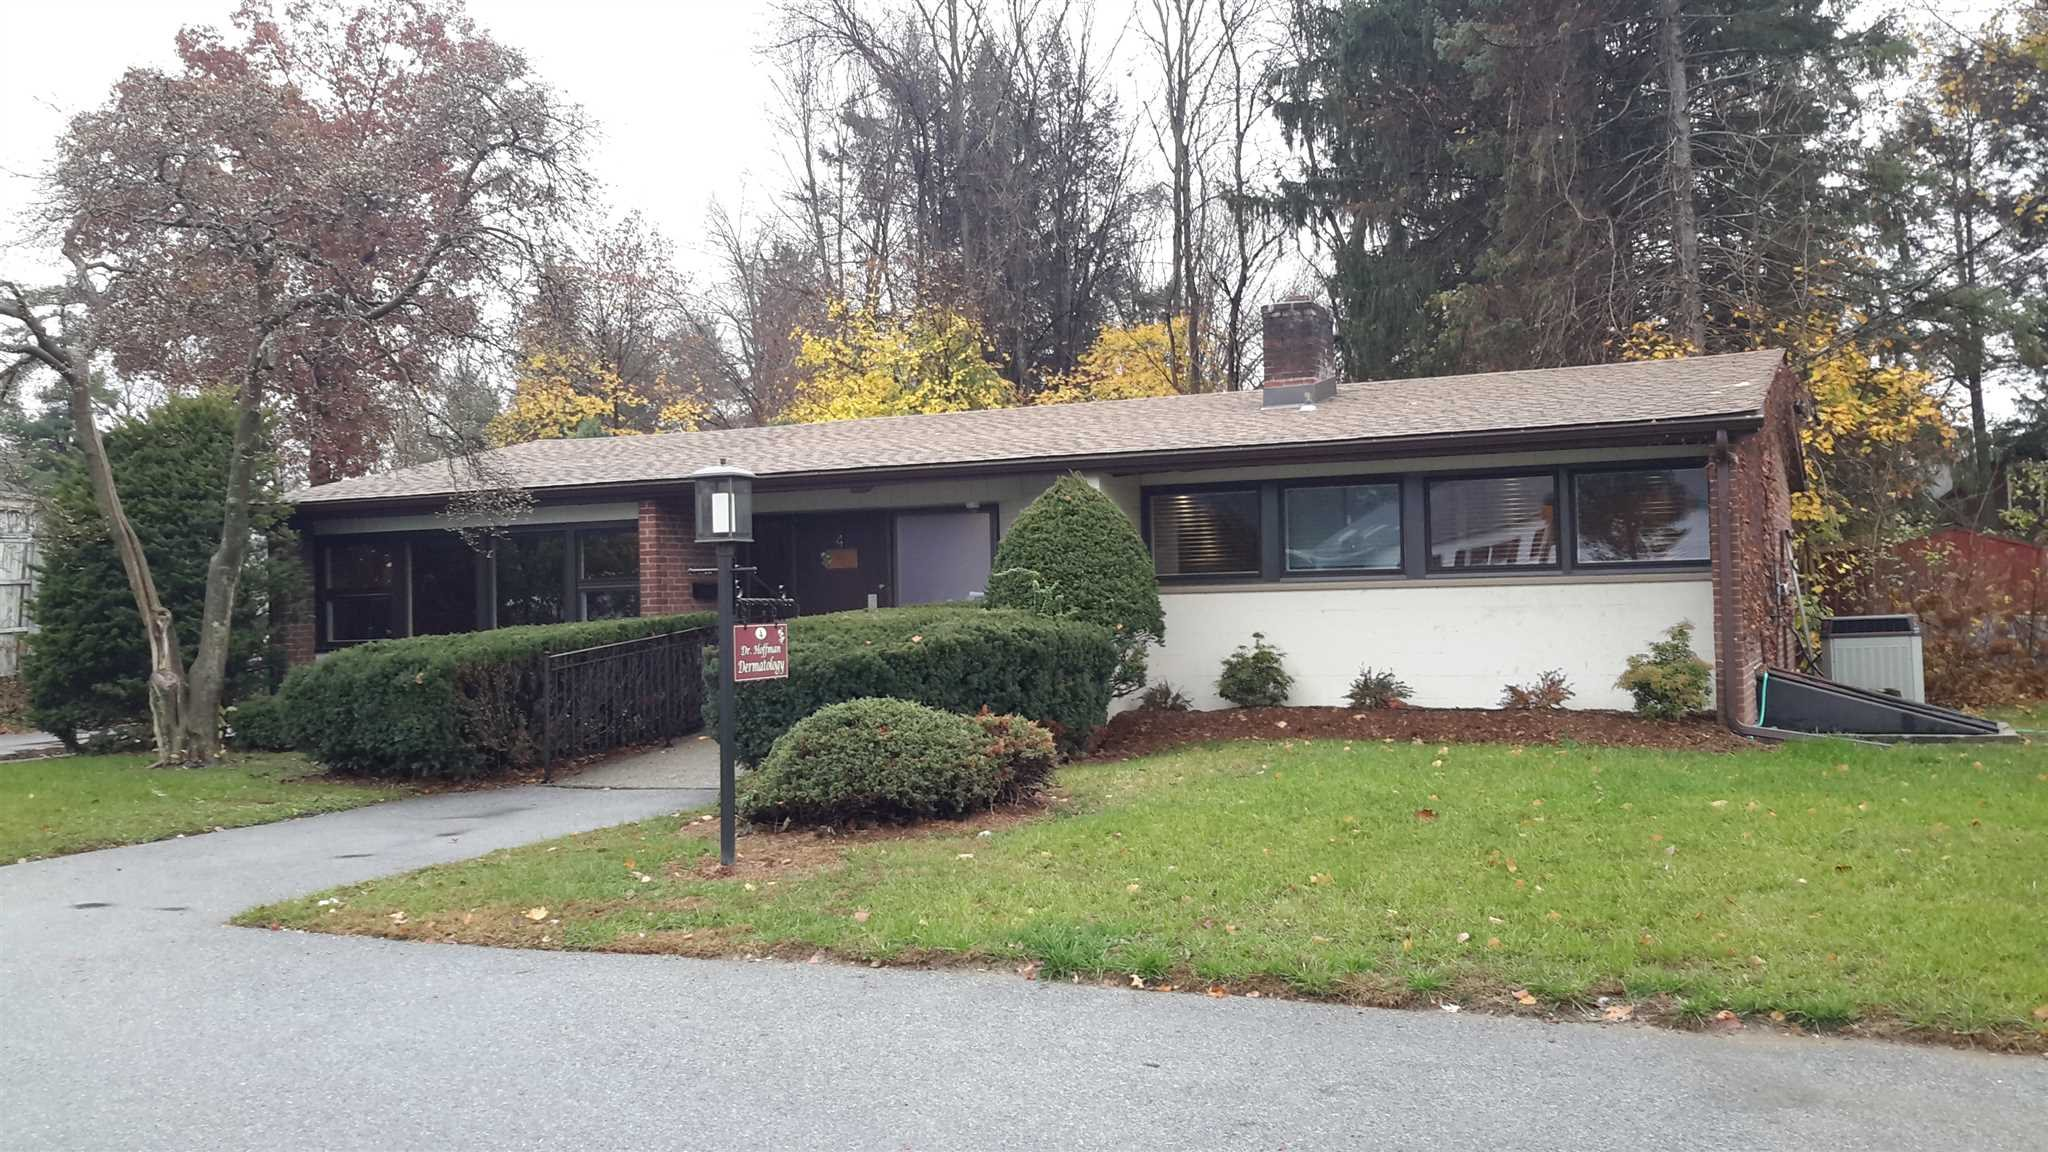 Commercial for Sale at 4 CRUMWOLD Place 4 CRUMWOLD Place Hyde Park, New York 12538 United States